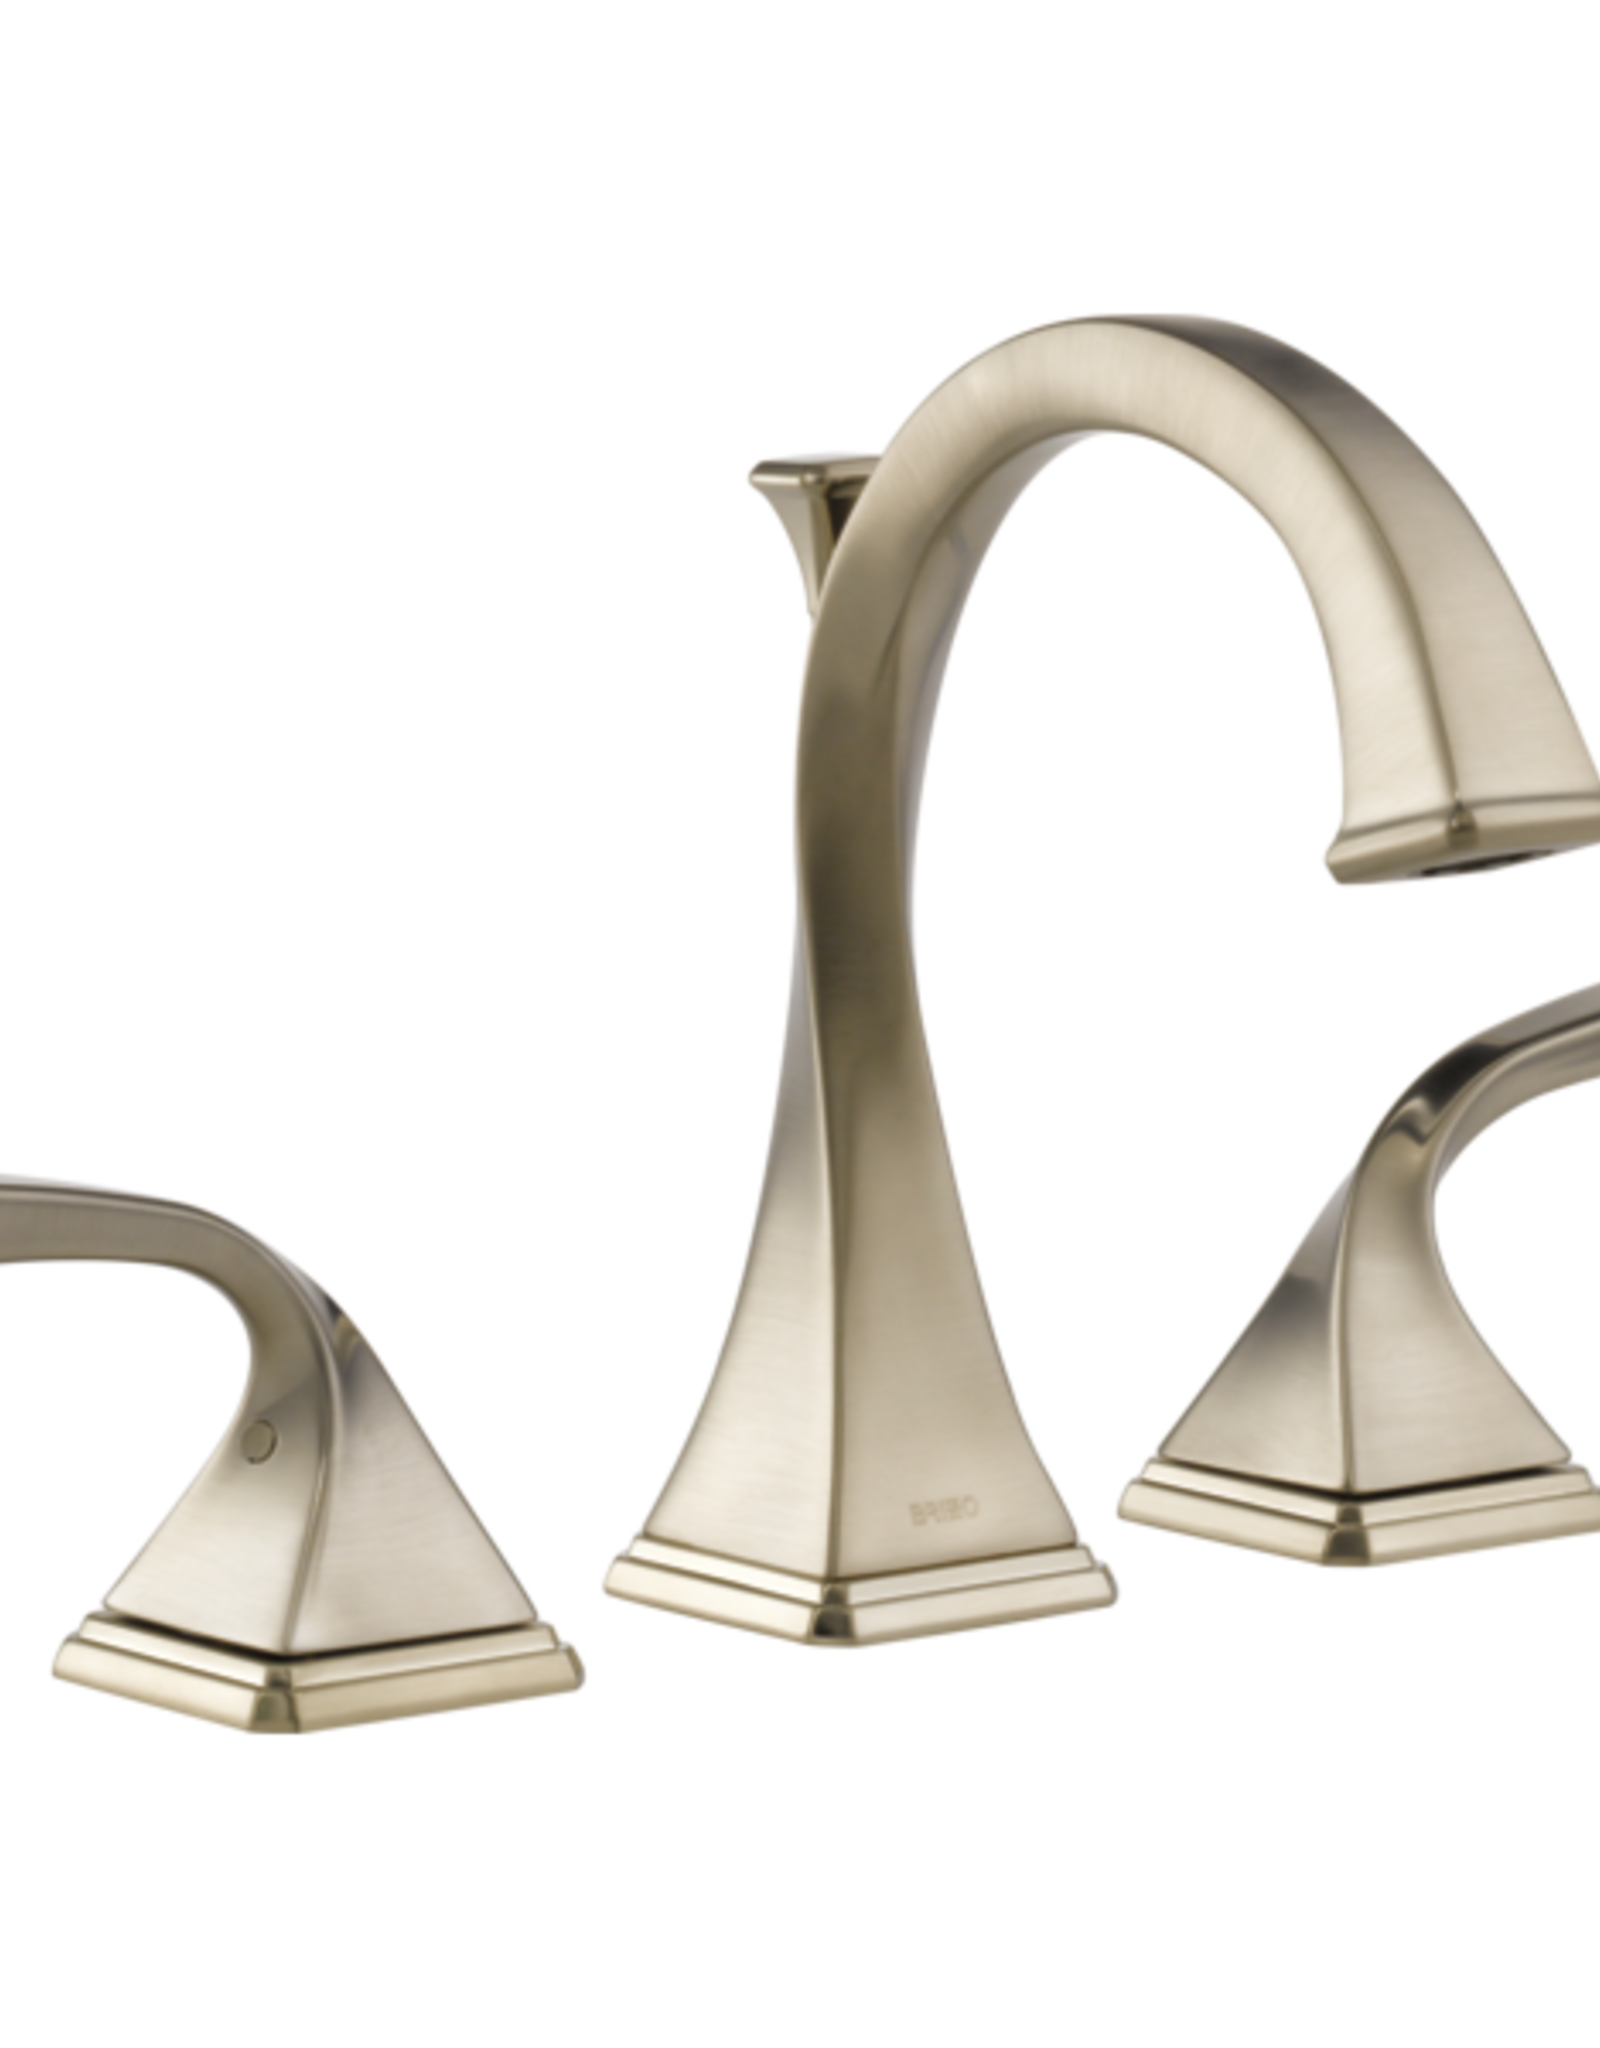 Brizo BRIZO VIRAGE - BRUSHED NICKEL WIDESPREAD VESSEL LAVATORY FAUCET